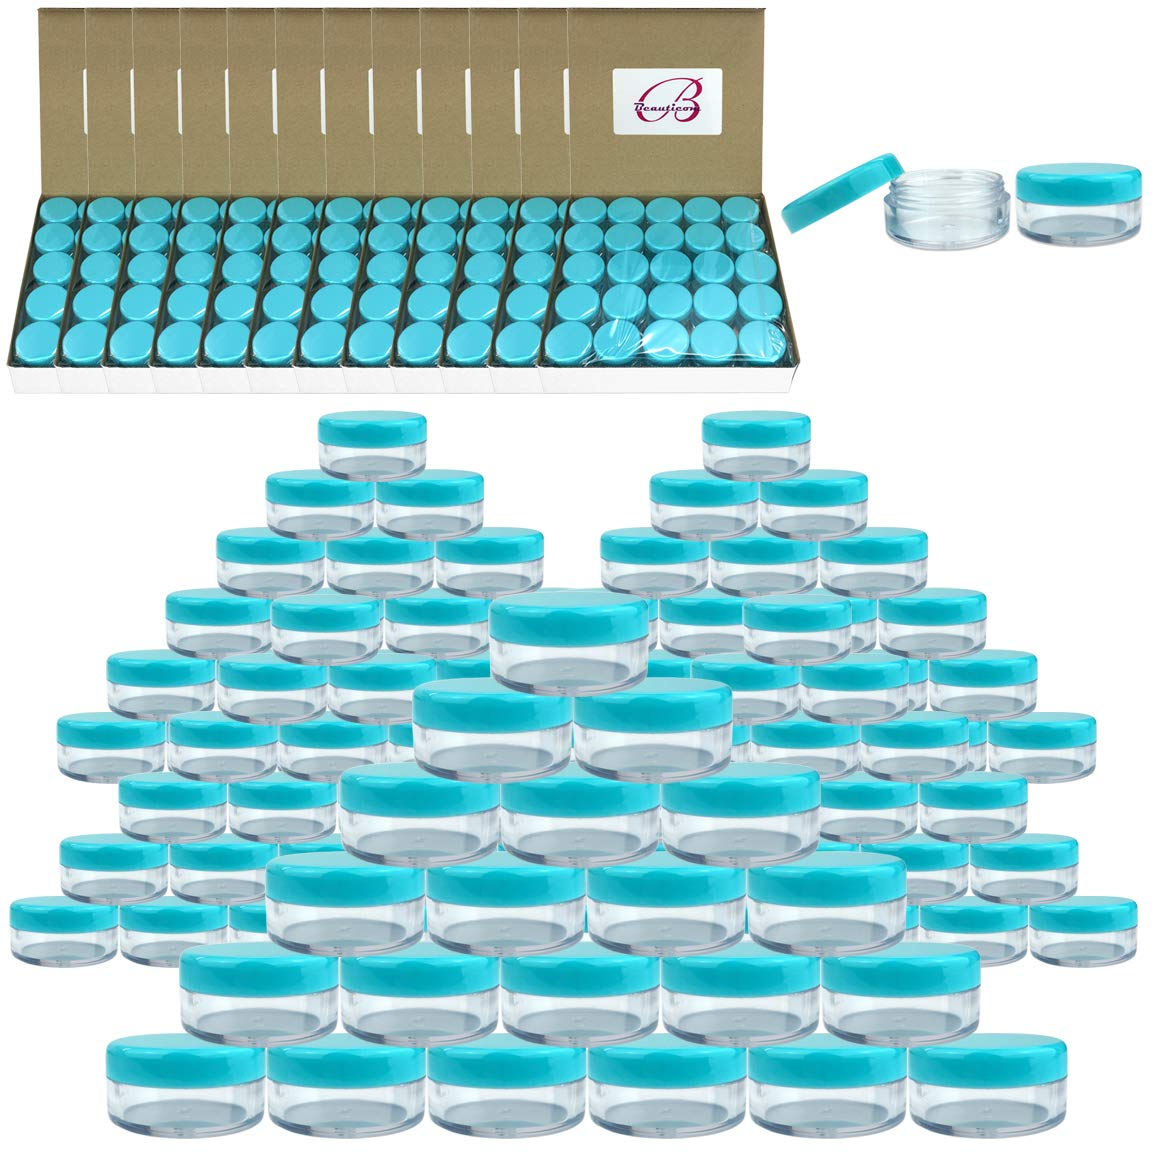 (Quantity: 2000 Pieces) Beauticom 5G/5ML Round Clear Jars with TEAL Sky Blue Lids for Scrubs, Oils, Toner, Salves, Creams, Lotions, Makeup Samples, Lip Balms - BPA Free